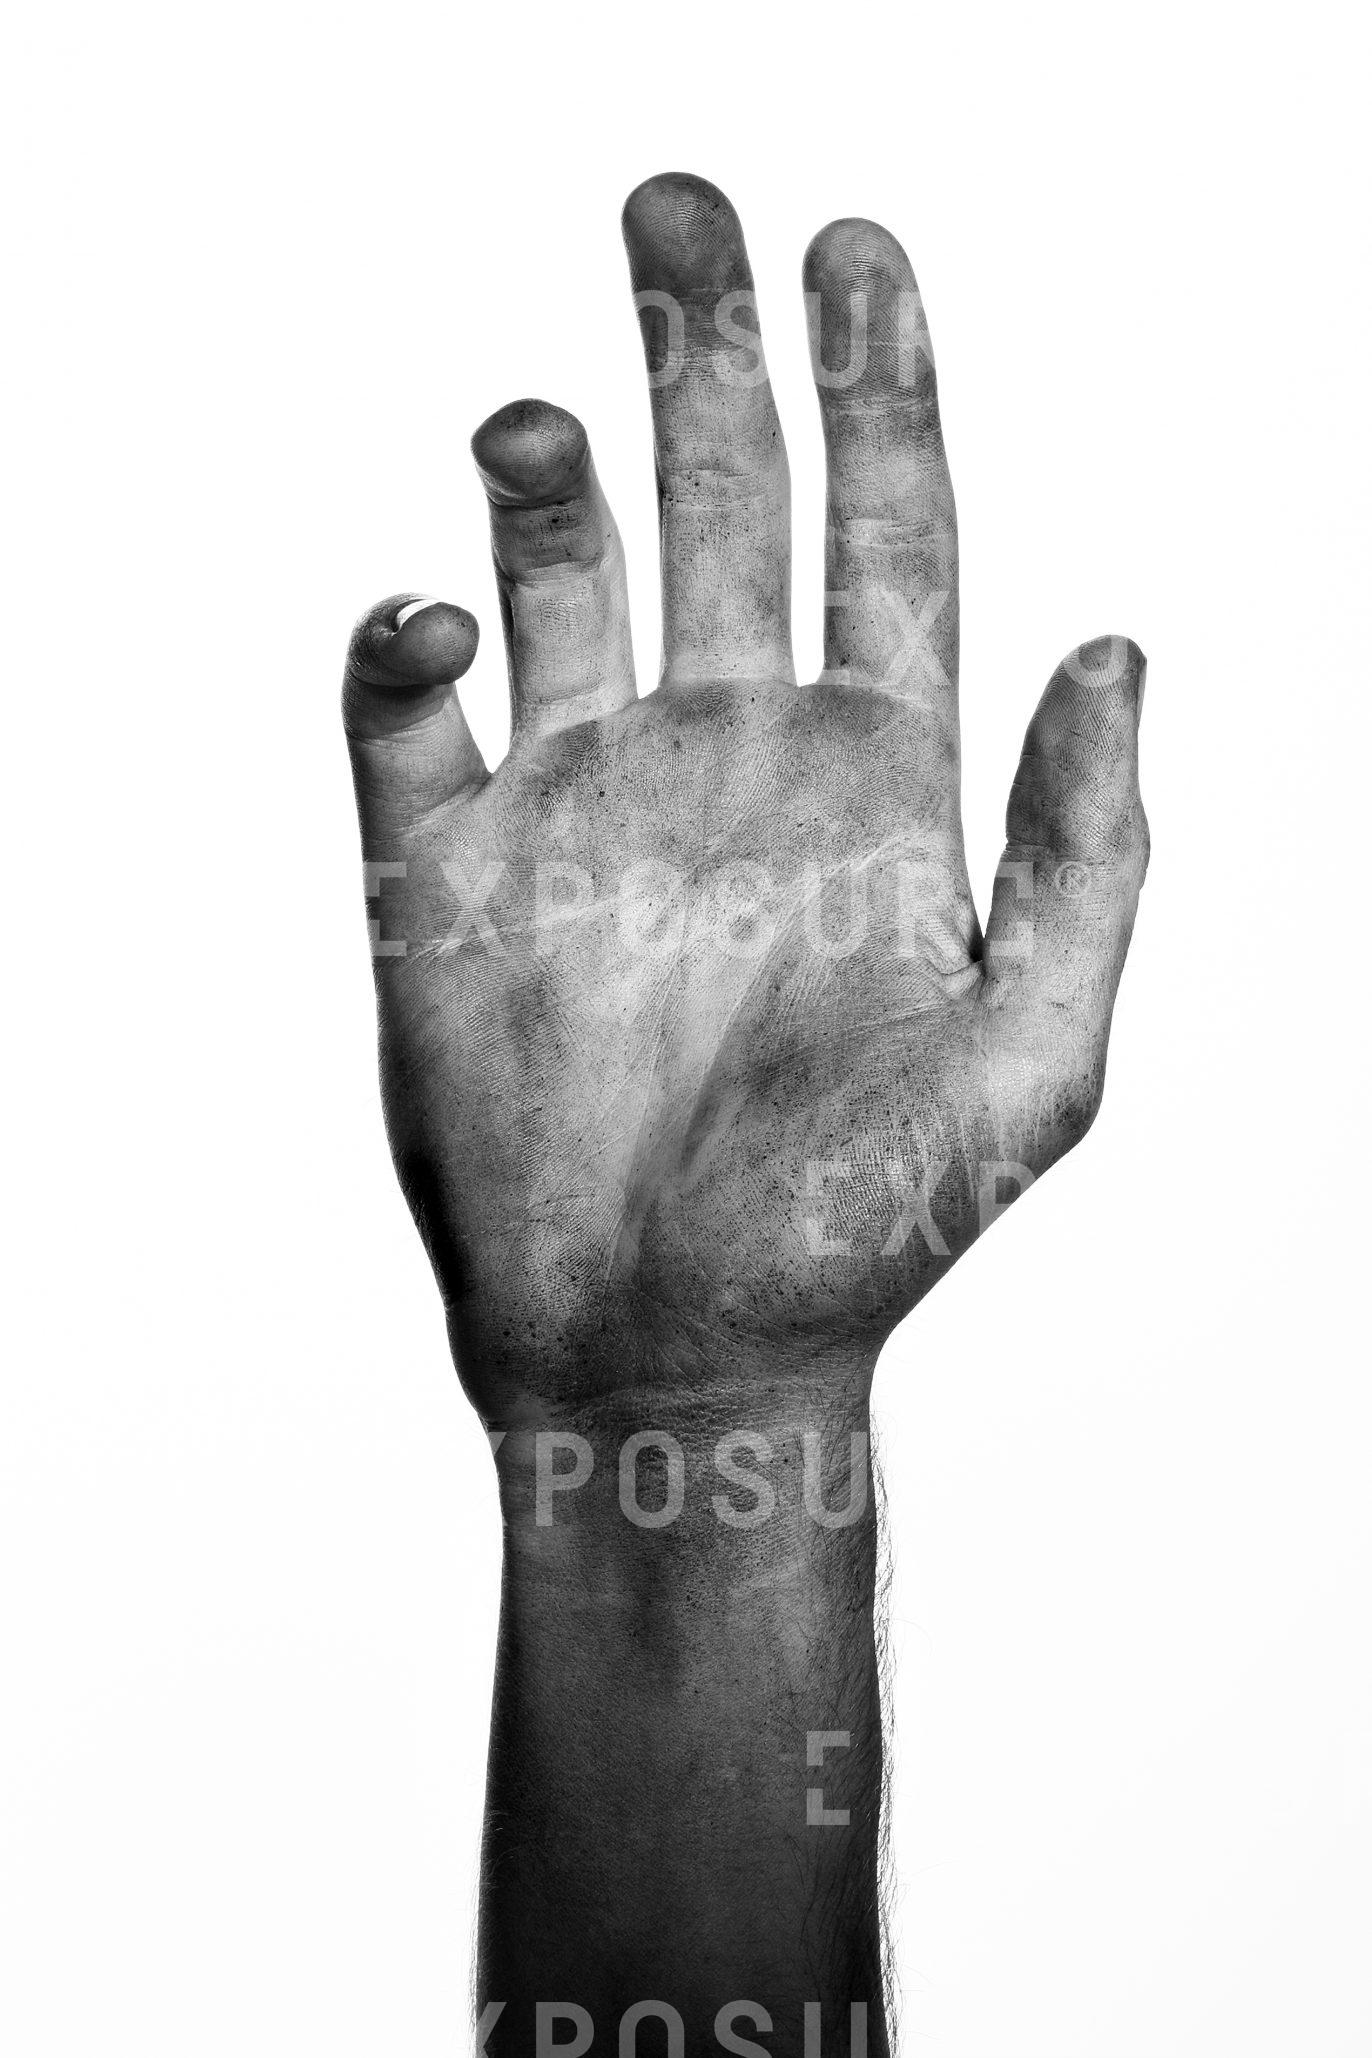 A portrait of a dirty right hand